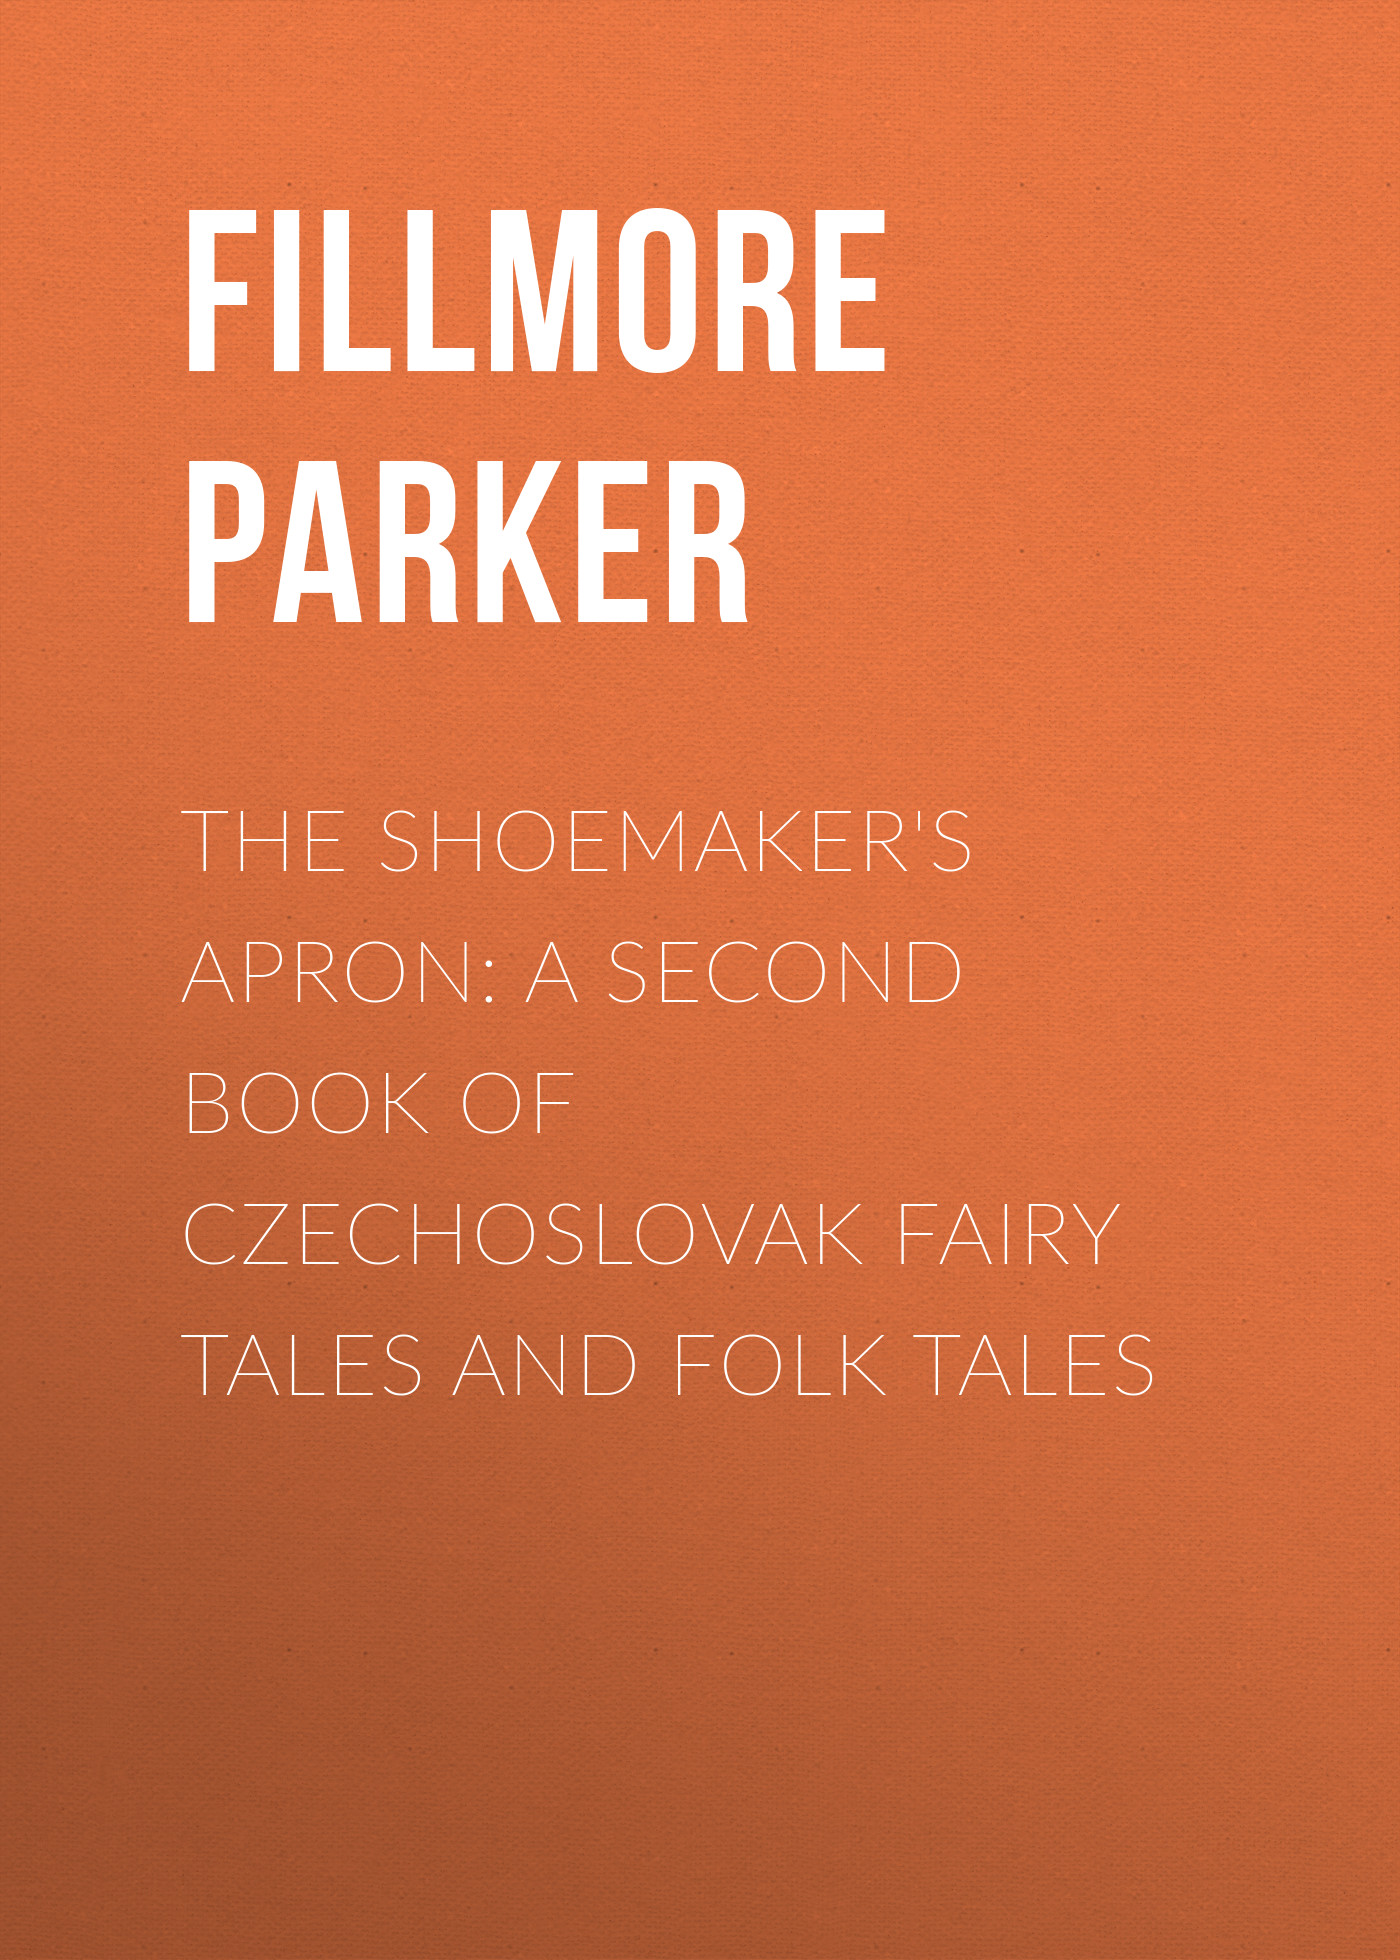 Fillmore Parker The Shoemaker's Apron: A Second Book of Czechoslovak Fairy Tales and Folk Tales cat tales